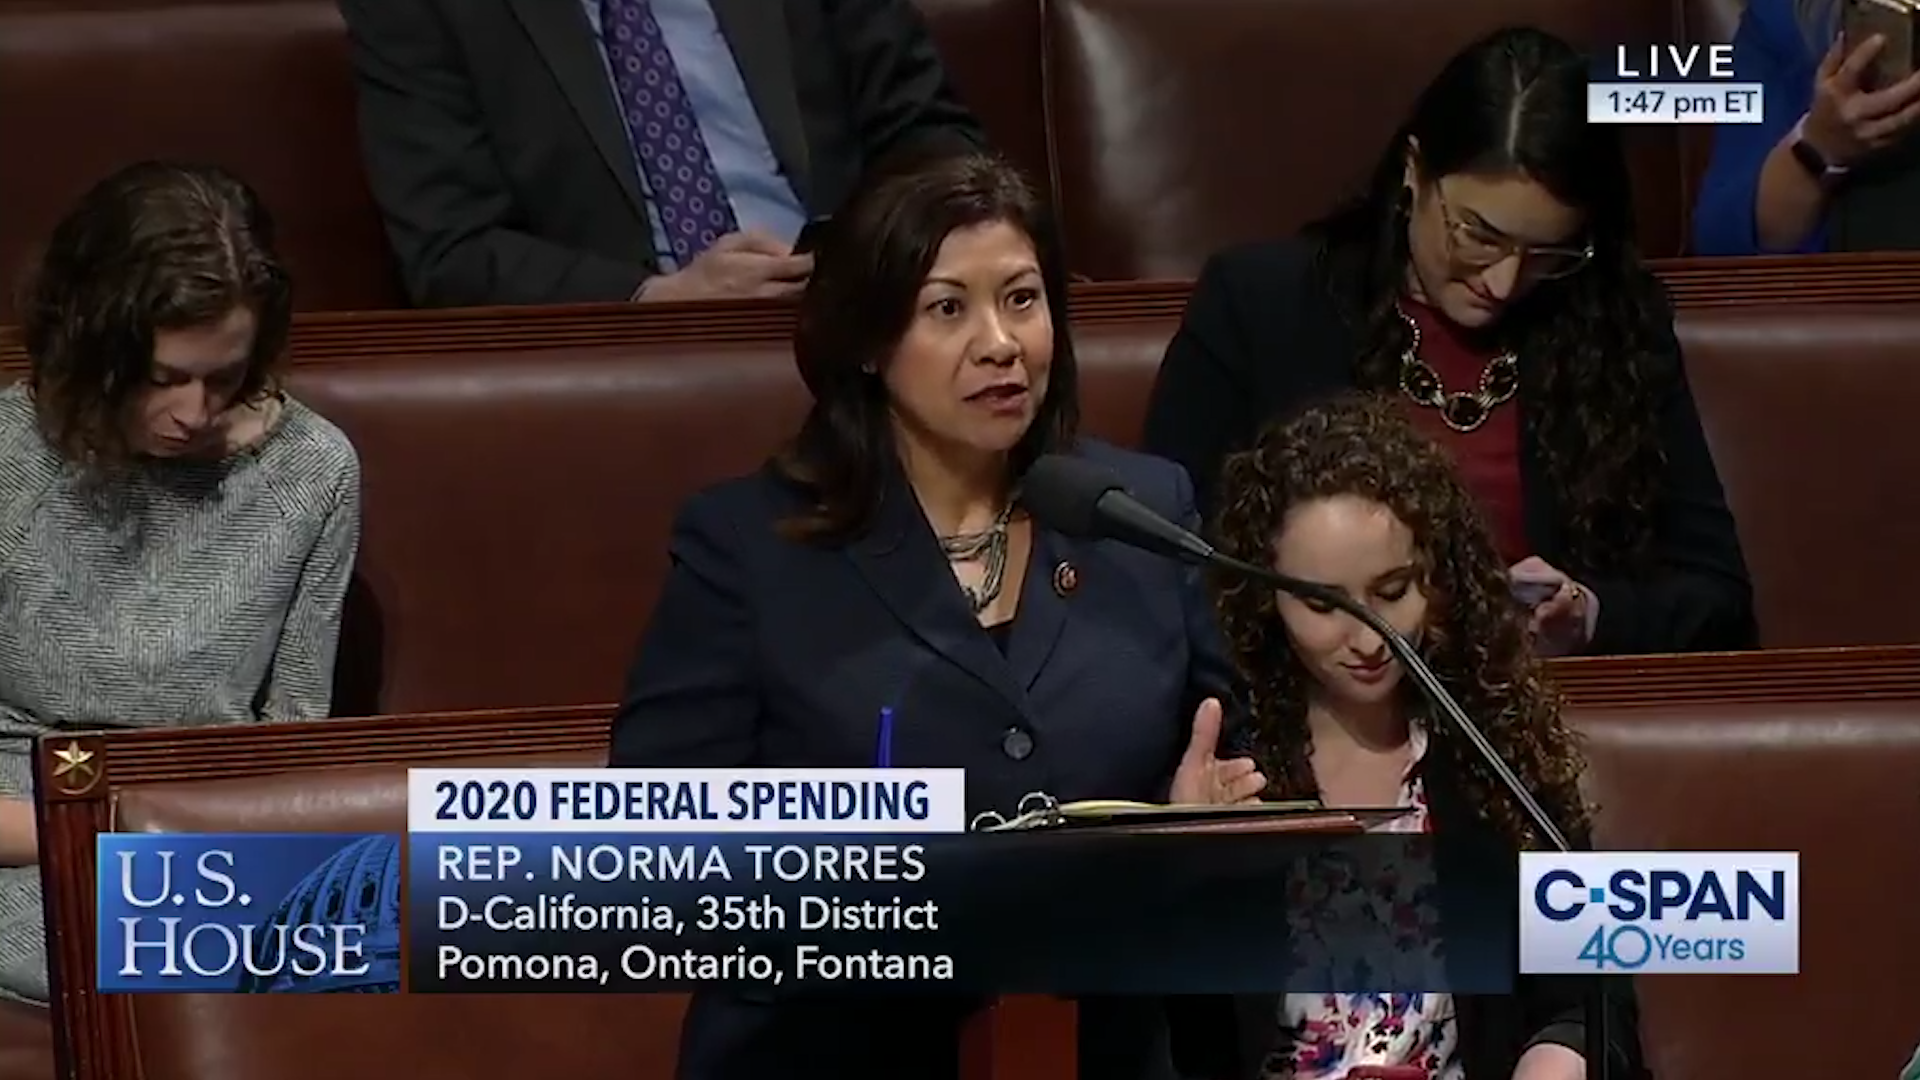 Democratic congresswoman chides 'sex-starved males' opposed to abortion rights